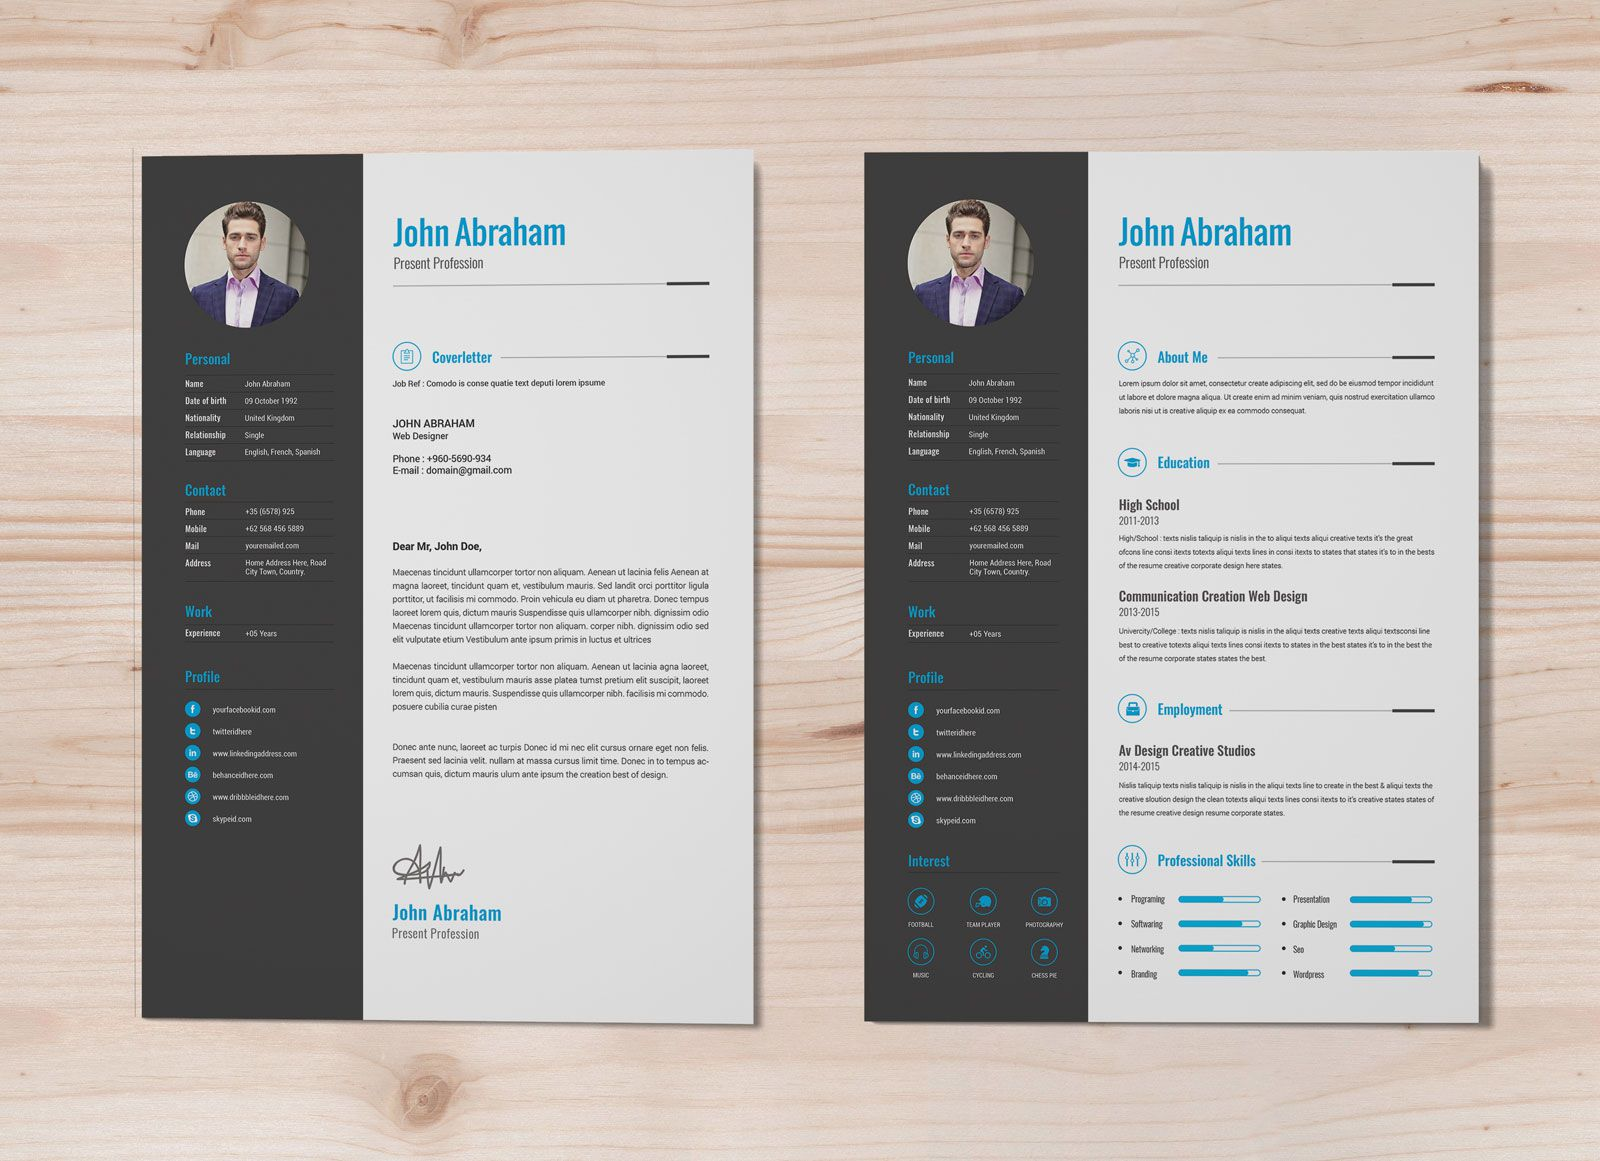 006 Stirring Cv Design Photoshop Template Free Inspiration  Creative Resume Psd DownloadFull